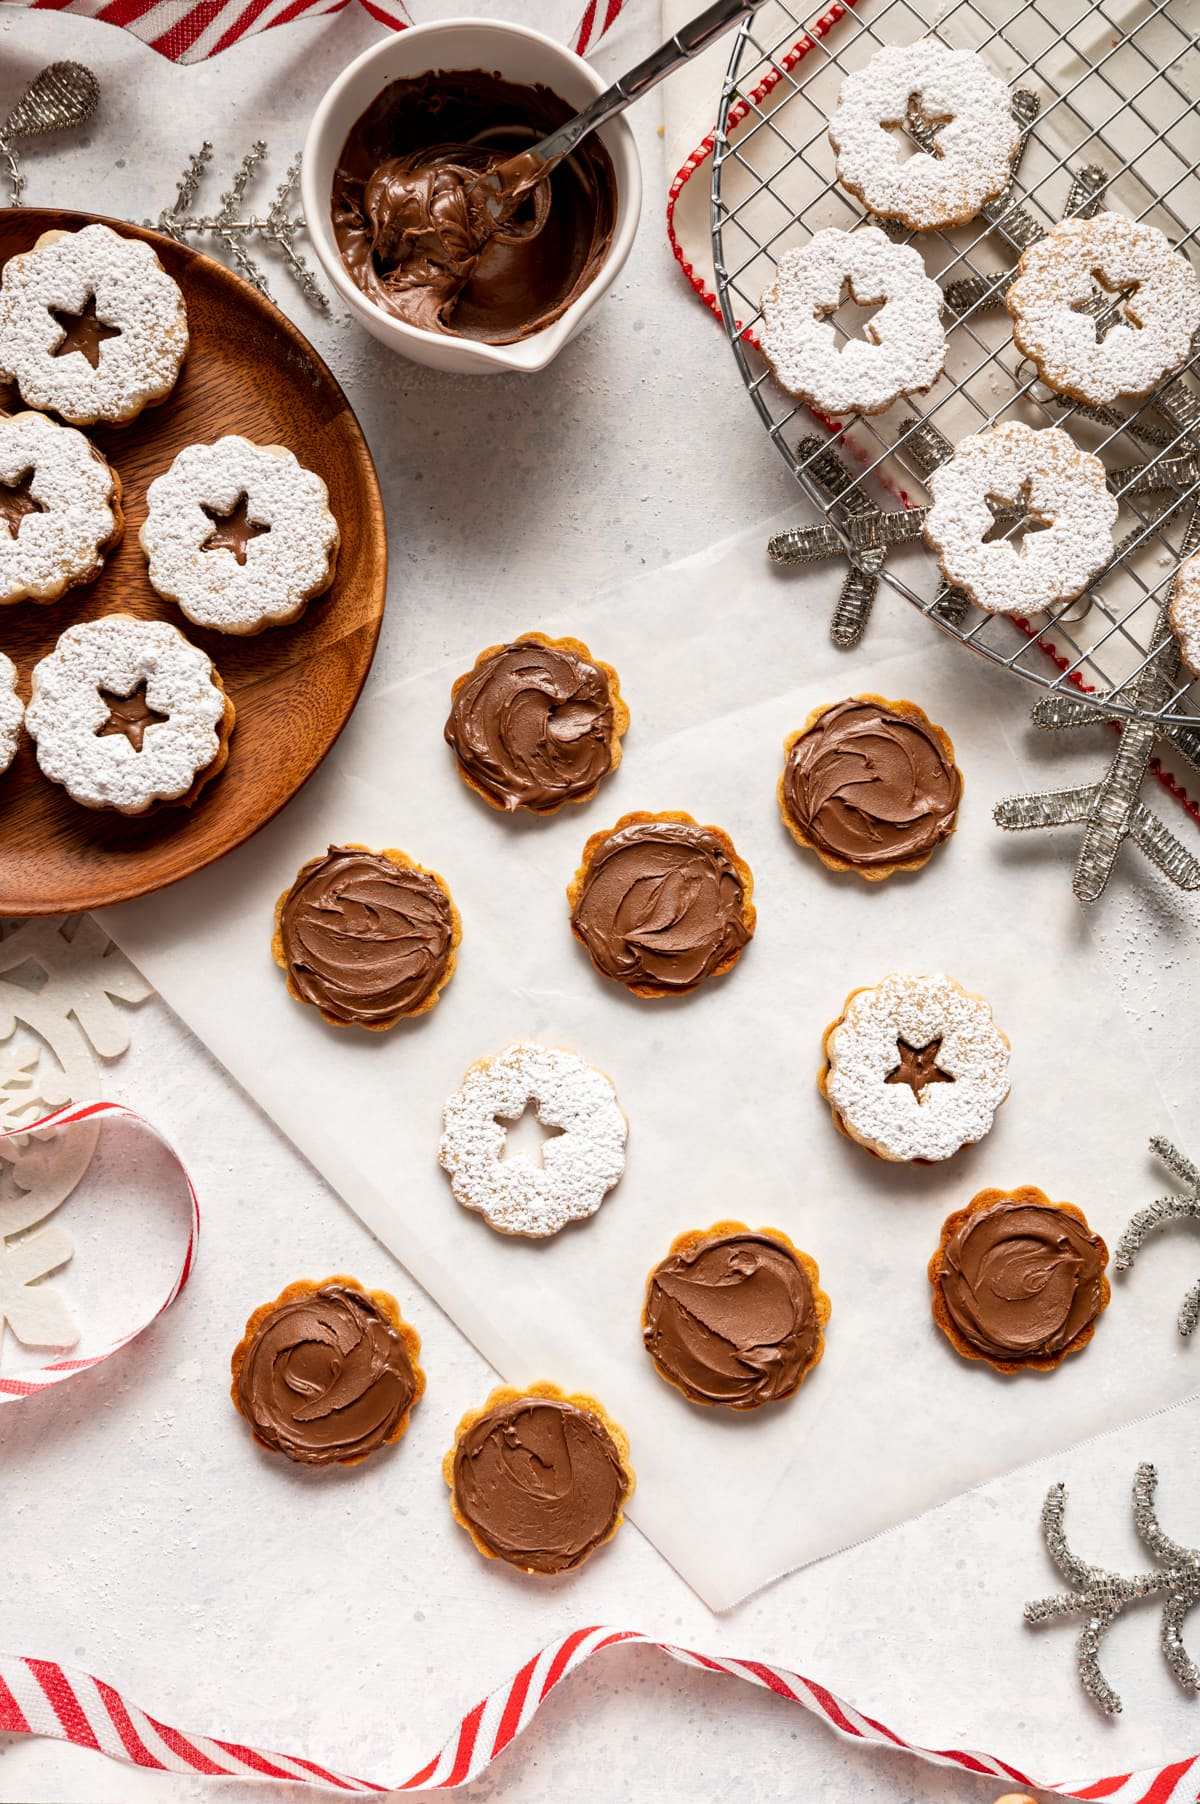 cookies with swirls of chocolate spread on them, chocolate filled sandwich cookies on a wood plate red and white ribbon